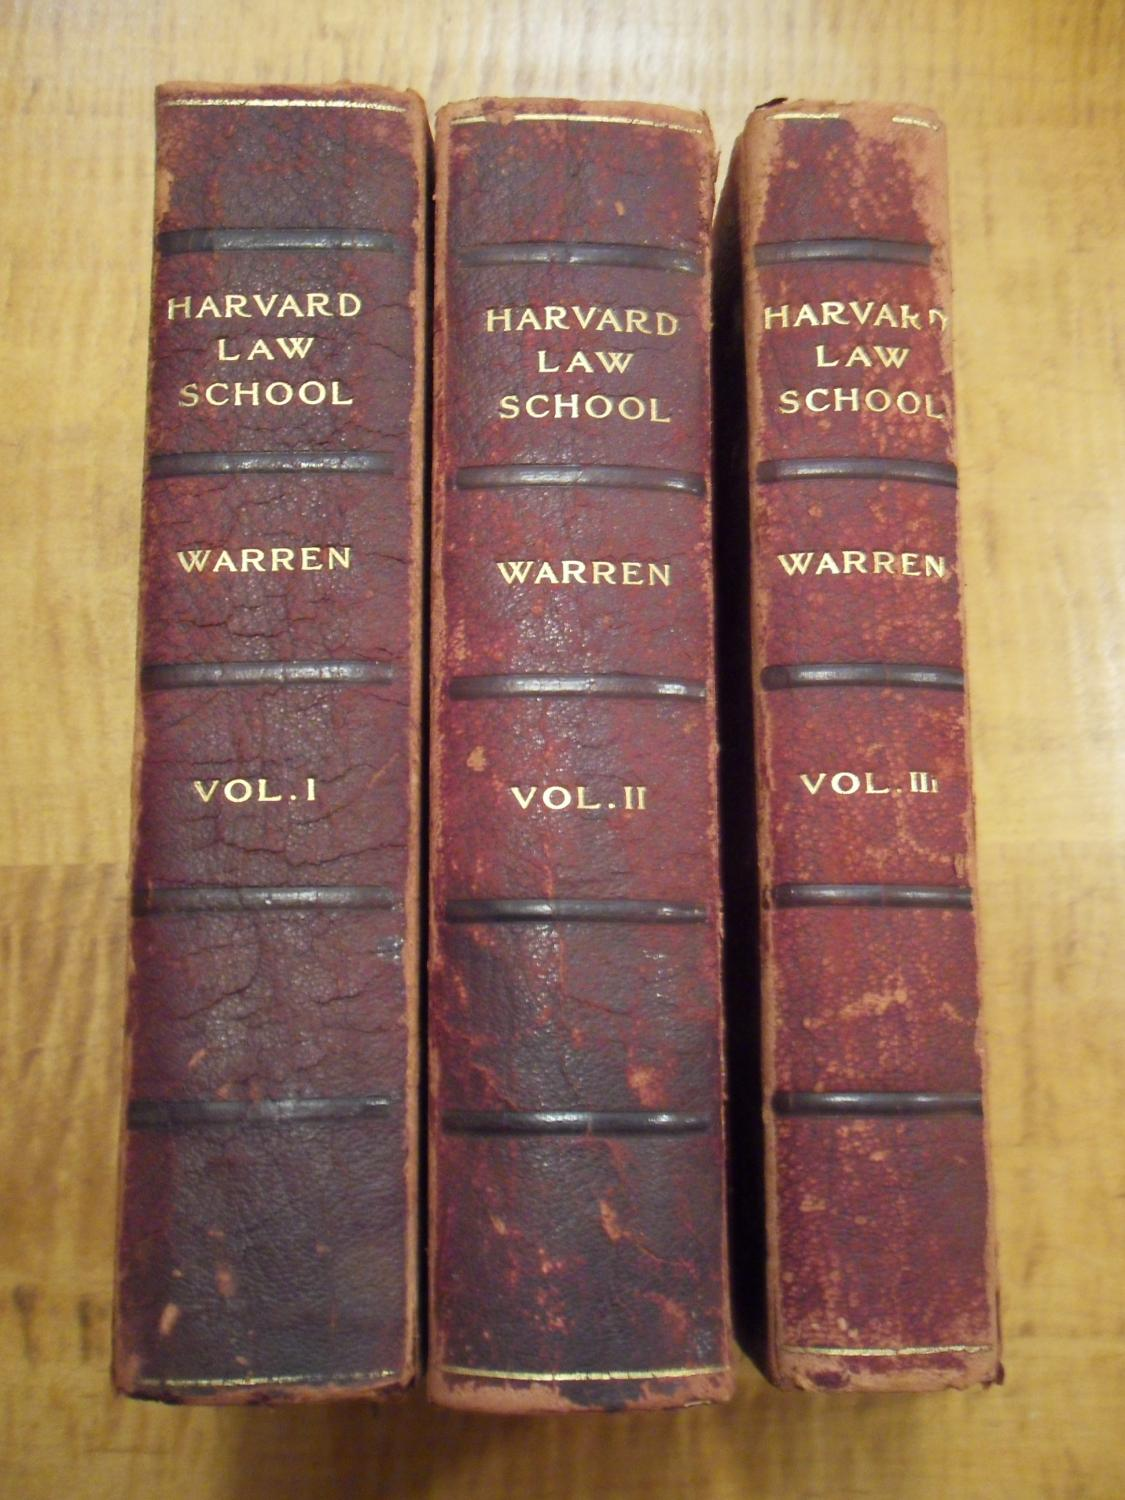 harvard history thesis handbook Harvard university is devoted to excellence in teaching, learning, and research, and to developing leaders in many disciplines who make a difference globally harvard university is made up of 11 principal academic units.